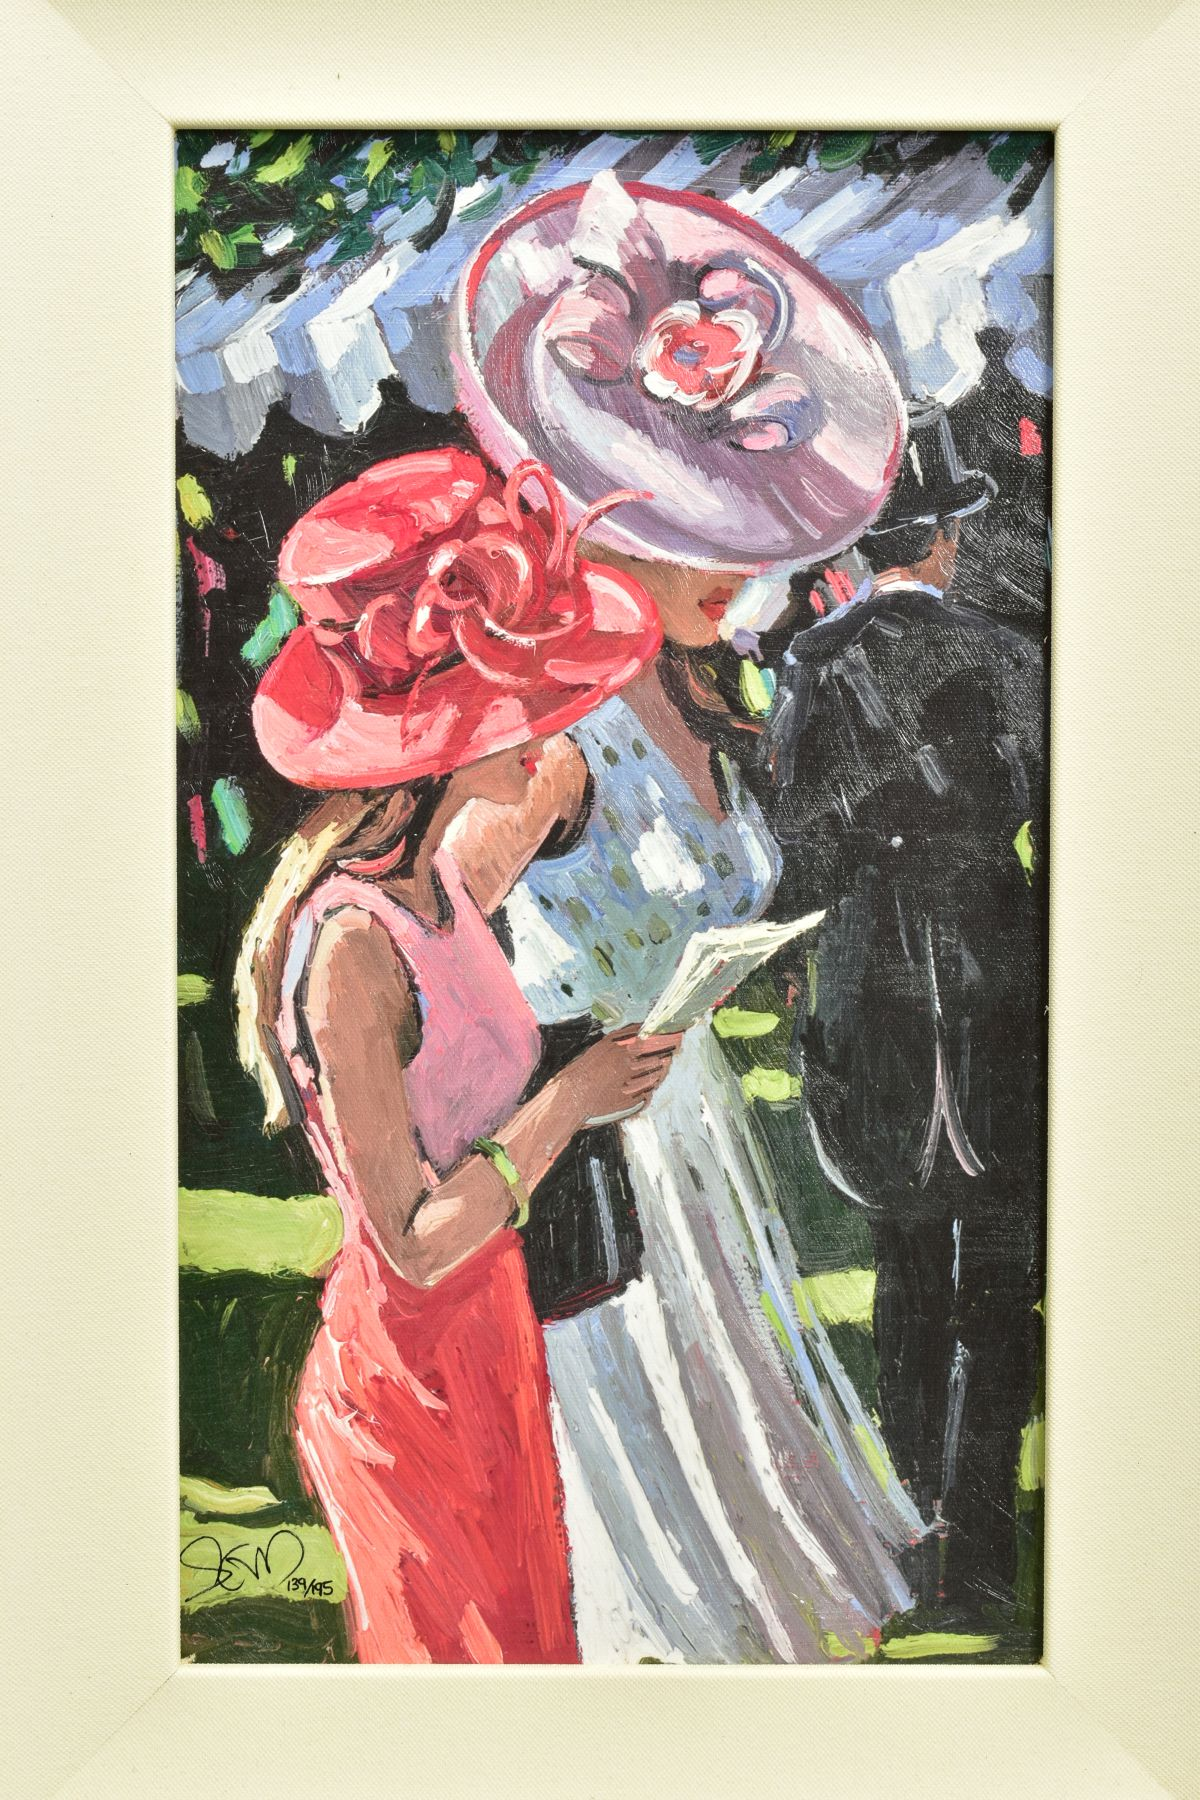 SHERREE VALENTINE DAINES (BRITISH 1959), 'Society Ladies', a Limited Edition print of female figures - Image 2 of 6